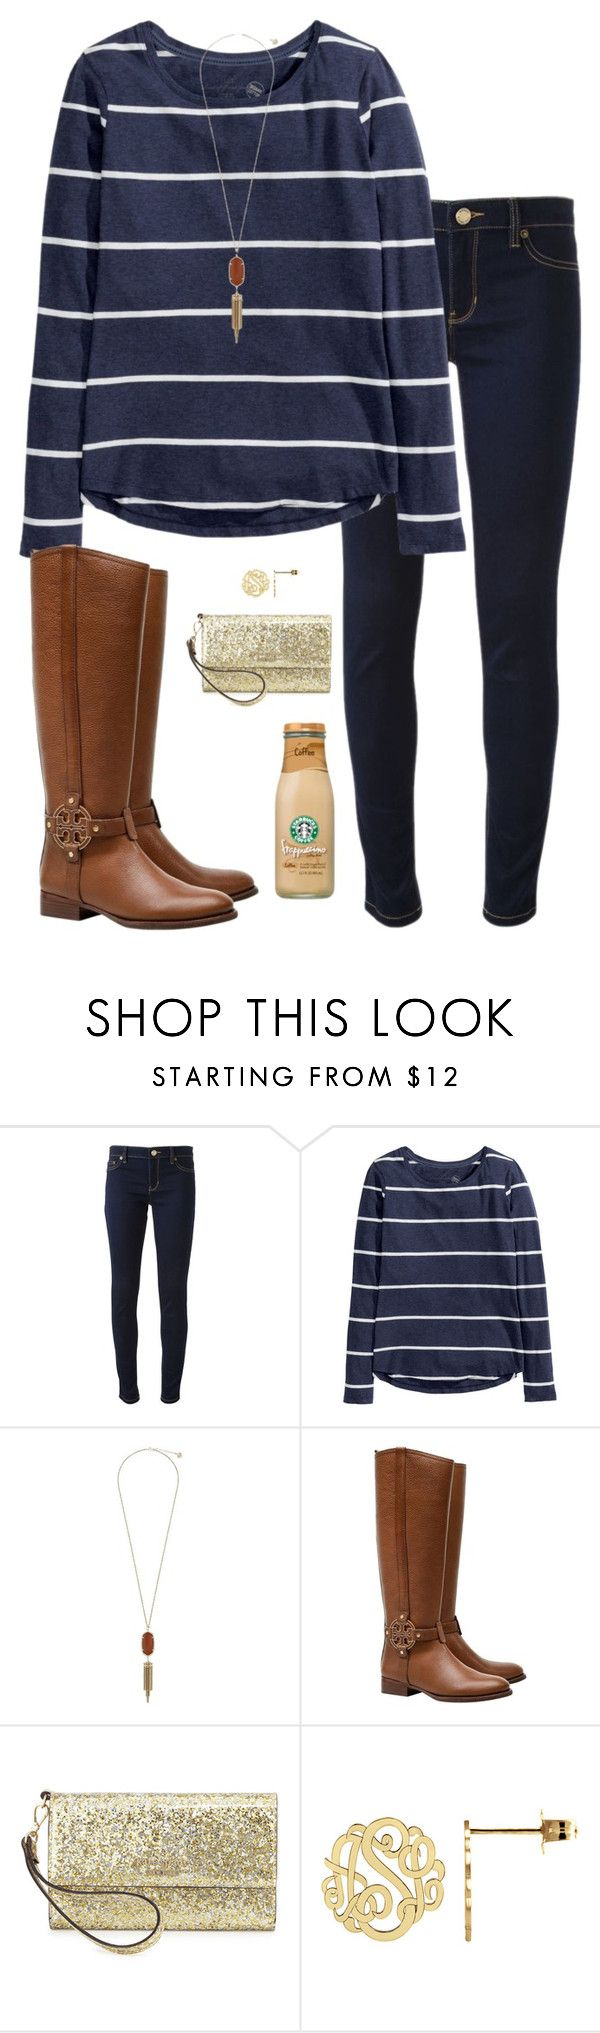 """""""Adeste Fideles"""" by sc-prep-girl ❤ liked on Polyvore featuring Michael Kors, H&M, Kendra Scott, Tory Burch and Kate Spade"""